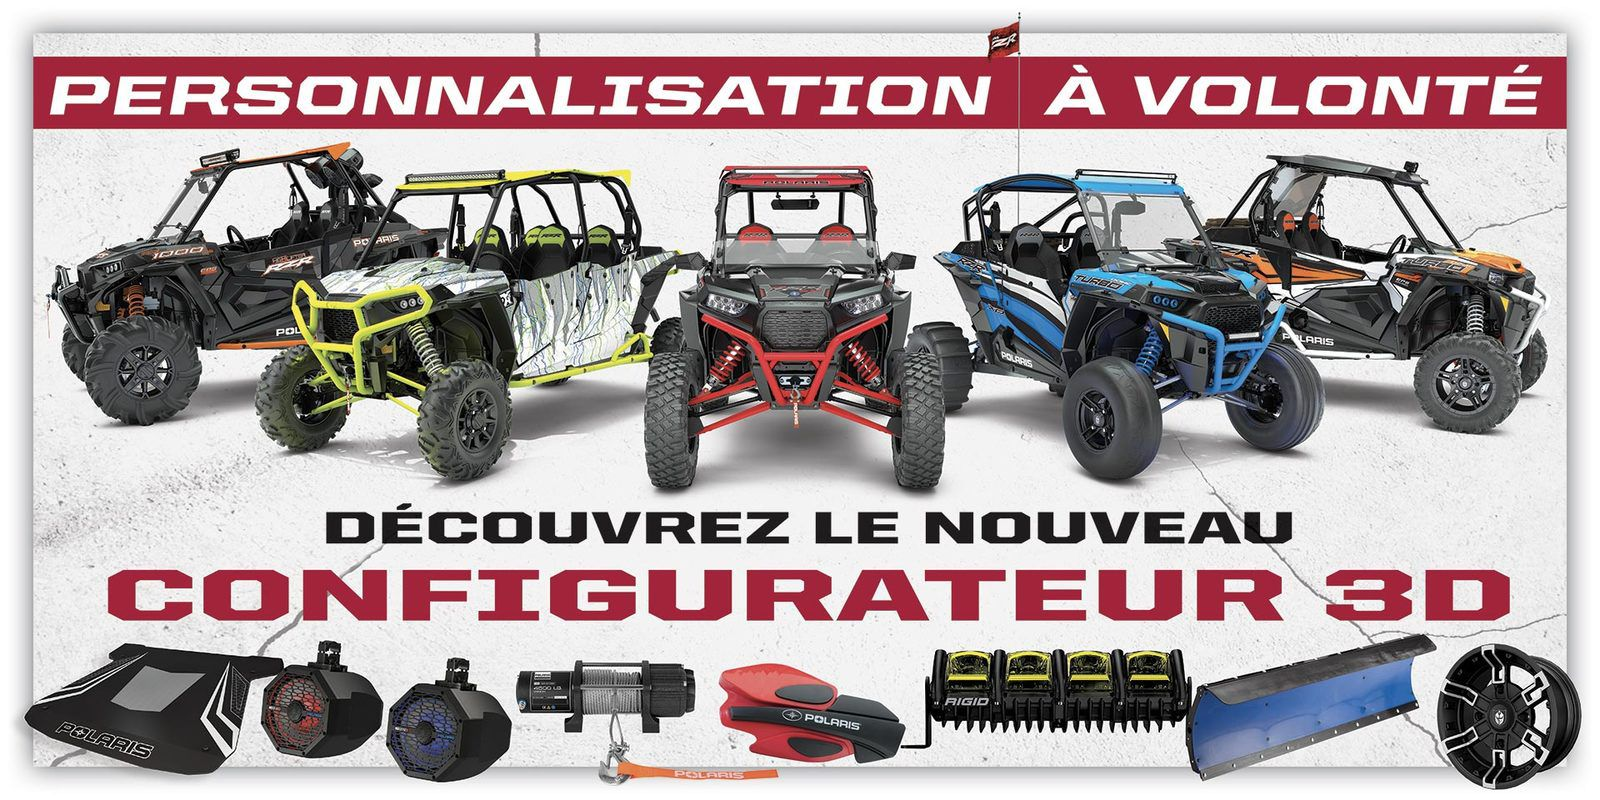 polaris france quadaction quad38 quad26 polaris 2020